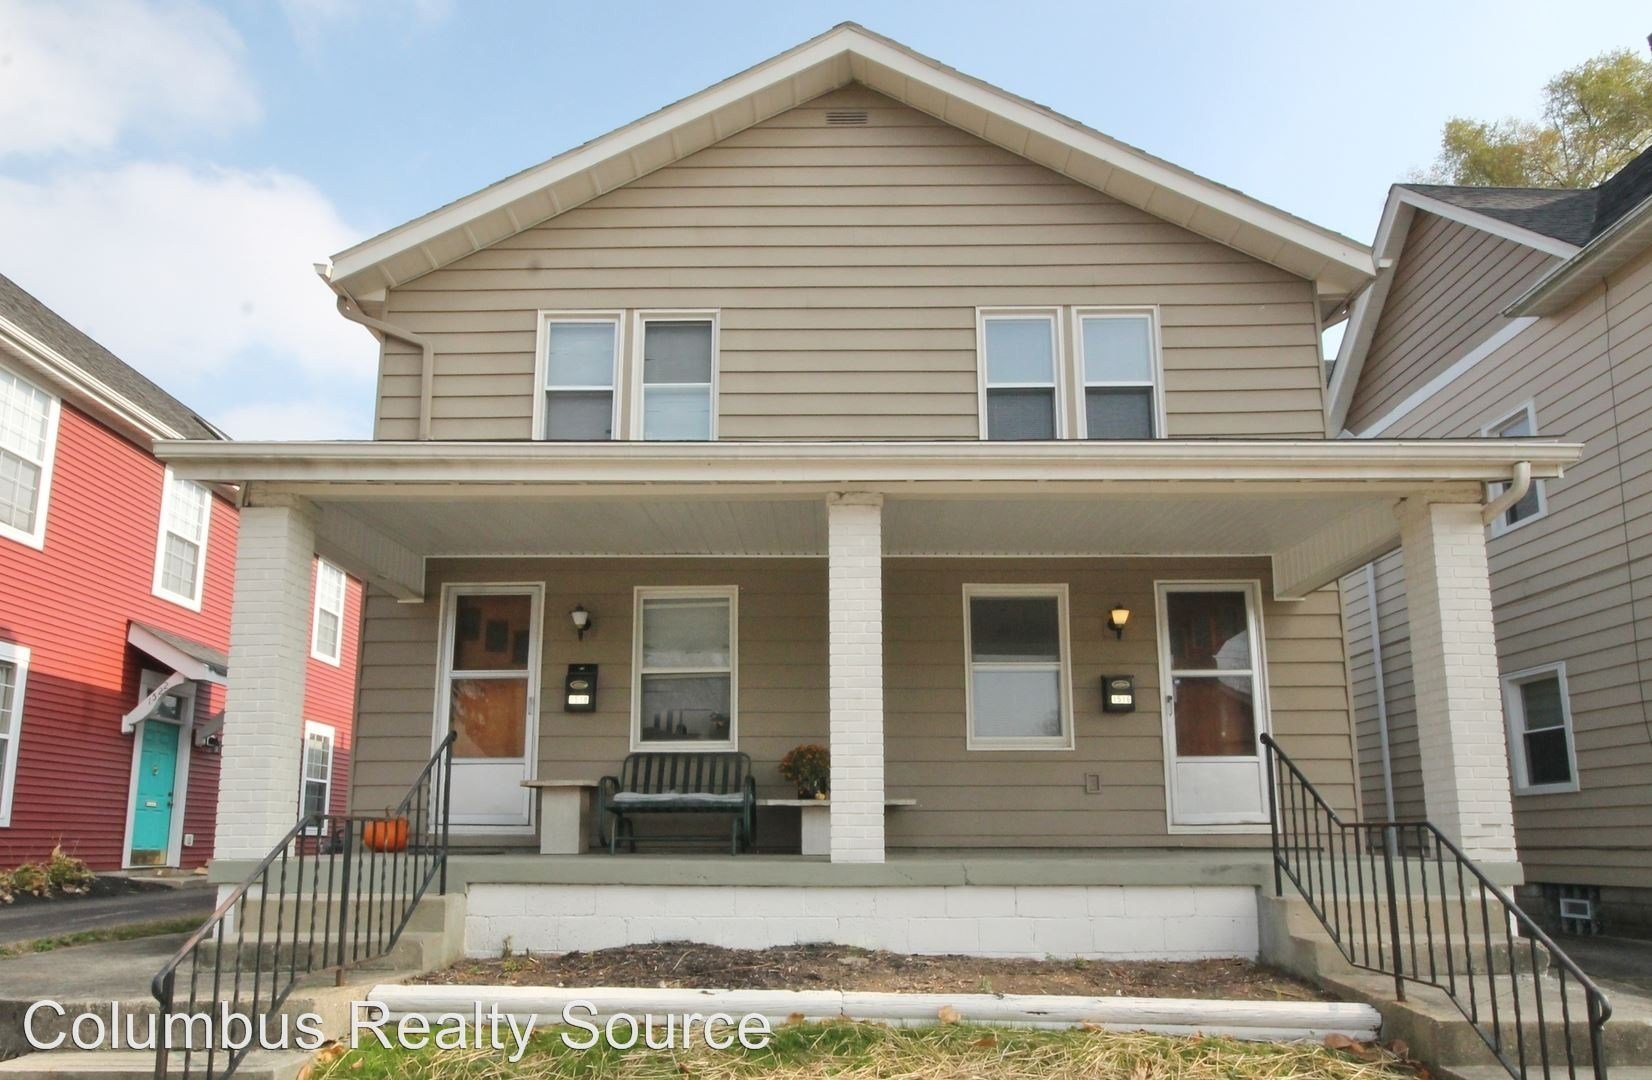 Best 1518 Glenn Ave Columbus Oh 43212 3 Bedroom Apartment For Rent For 1 199 Month Zumper With Pictures